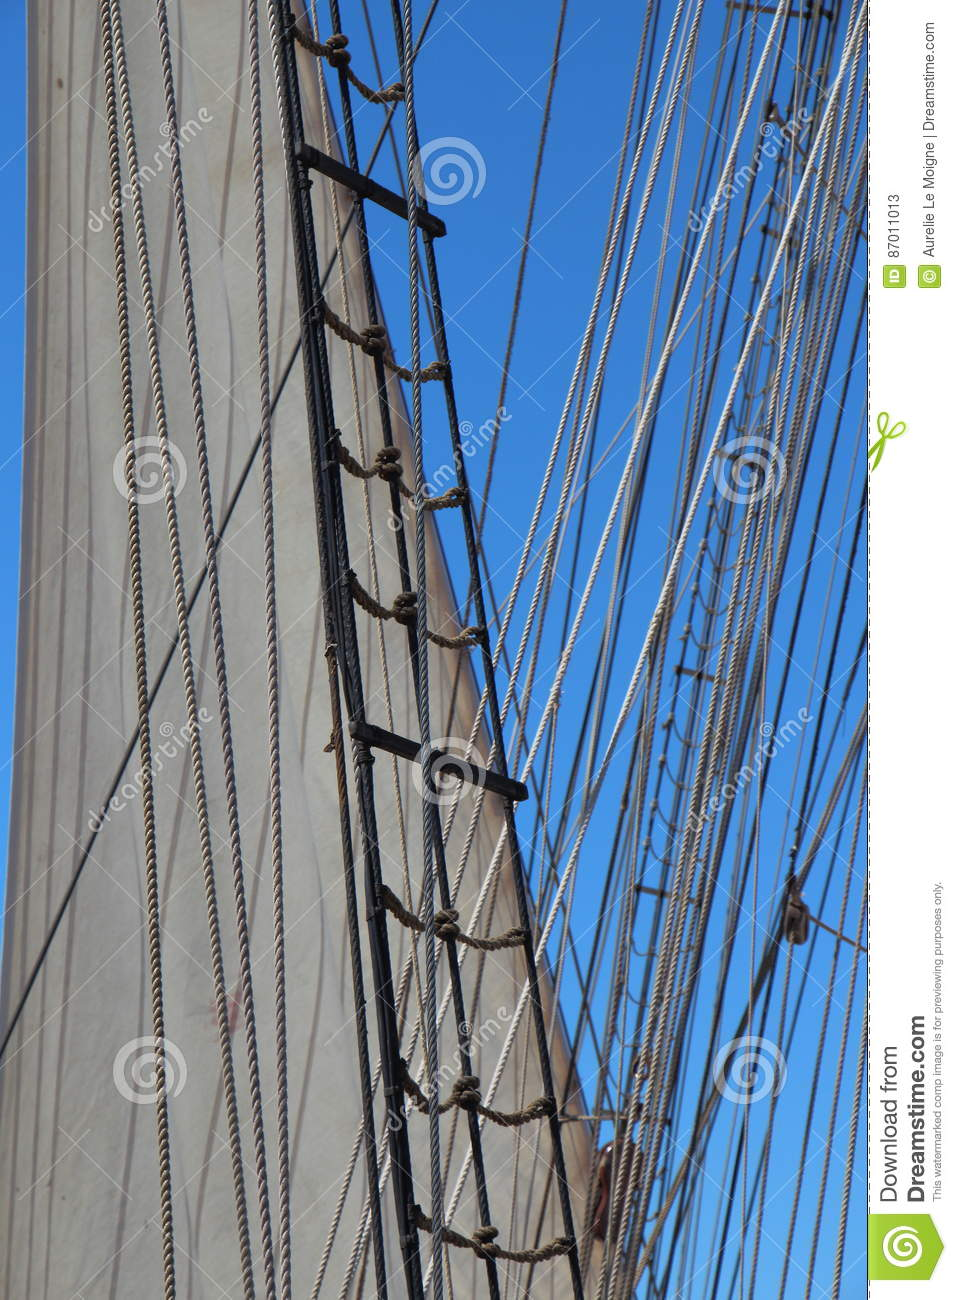 Shroud And Rope Ladder Of A Sailboat Stock Image - Image of mast ...